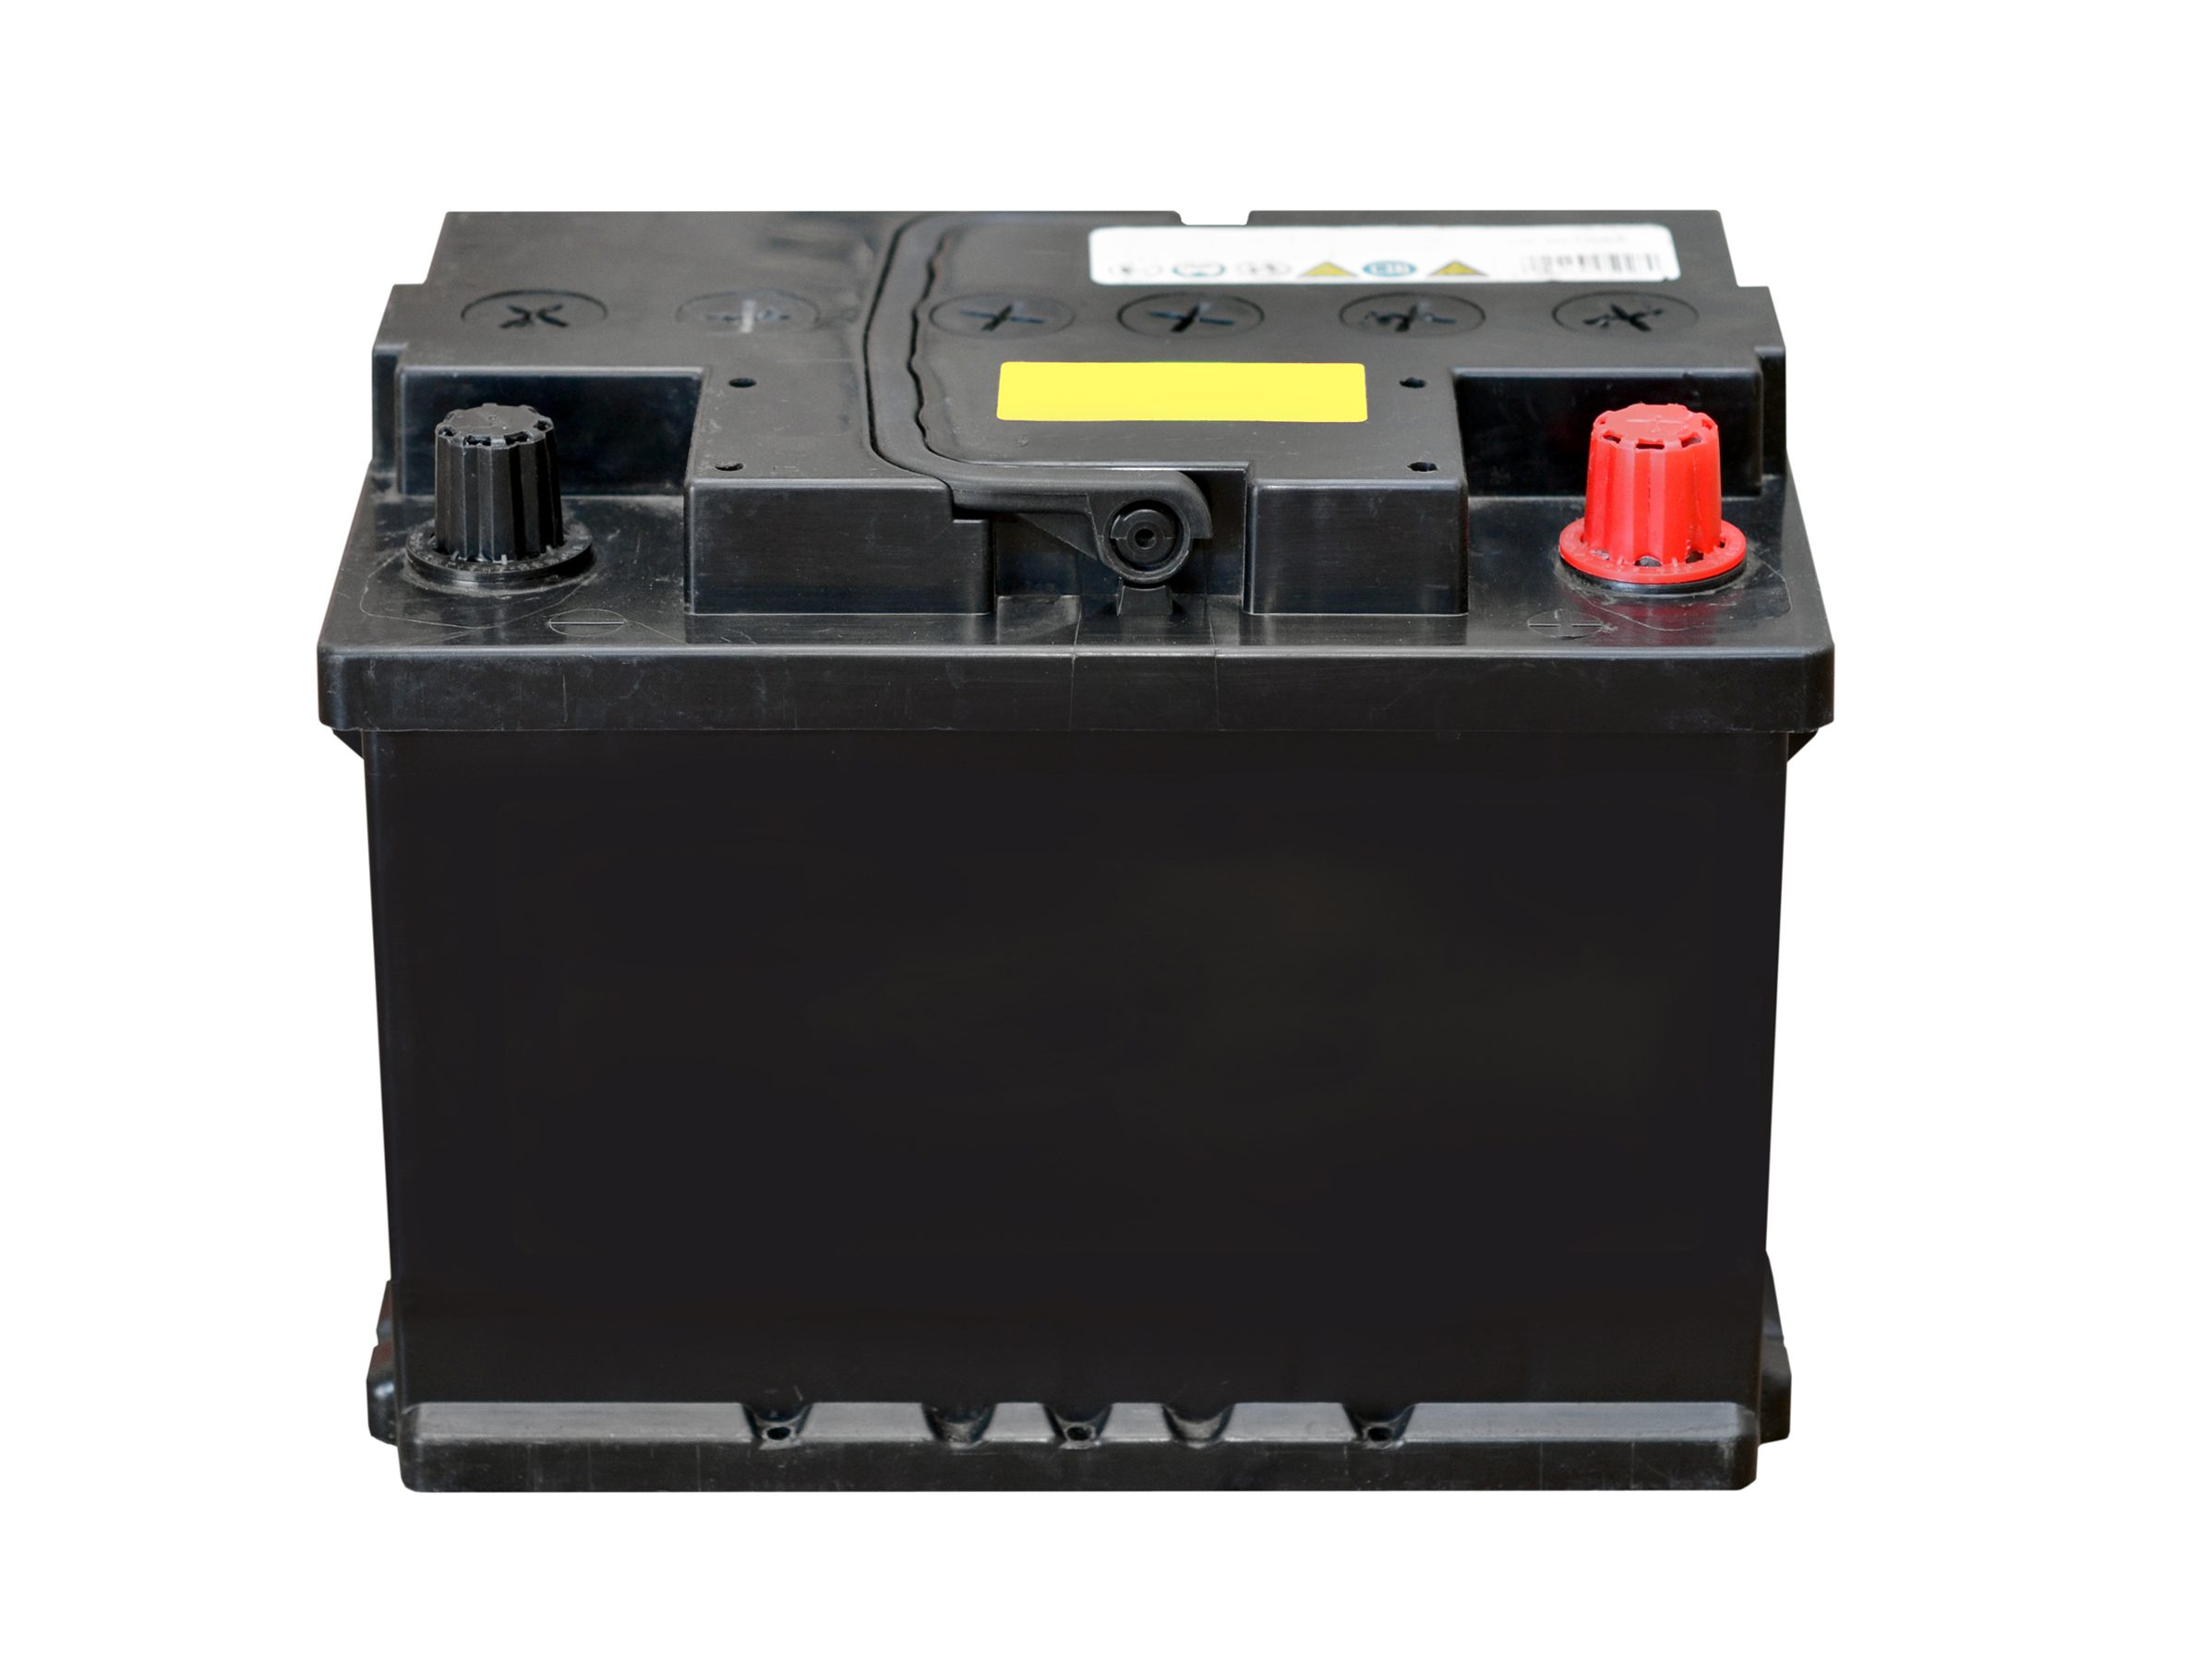 2. Choose a fresh car battery